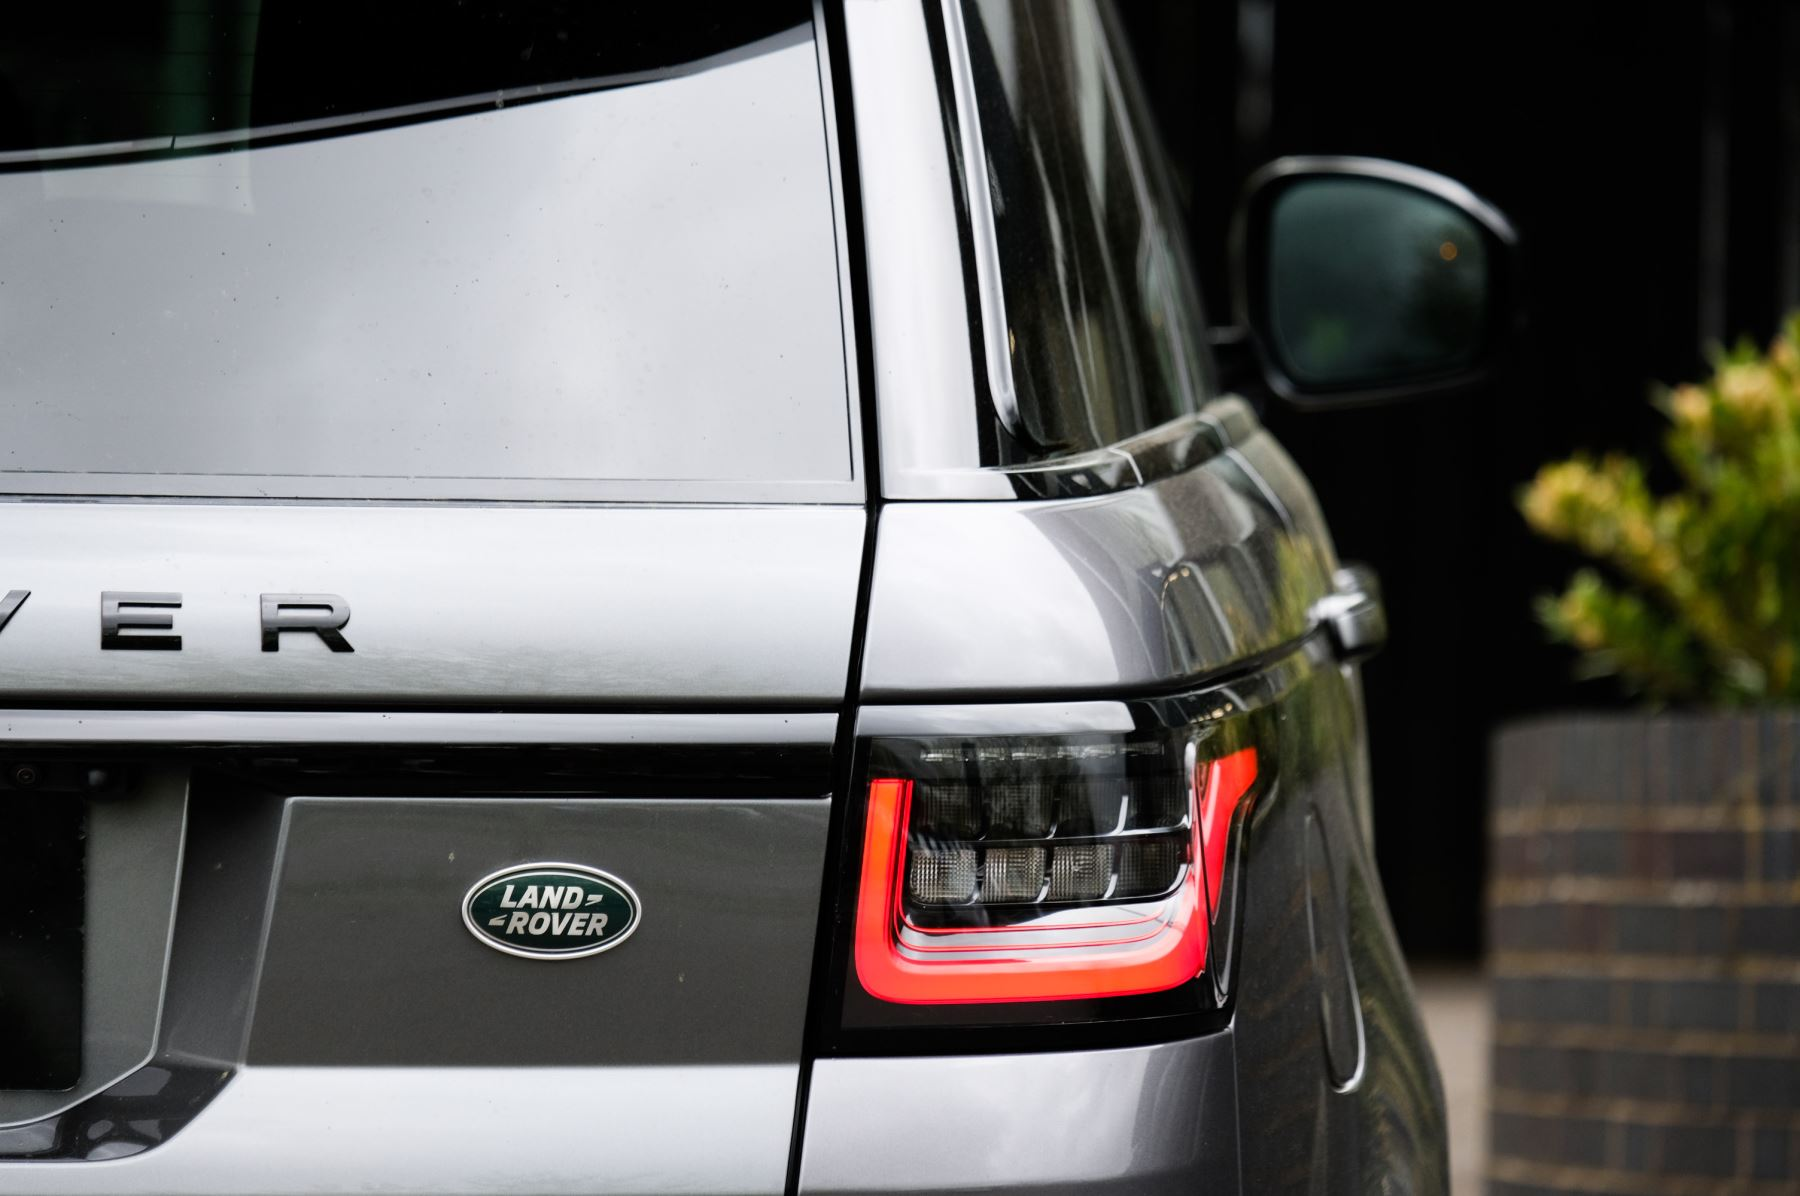 Land Rover Range Rover Sport 3.0 SDV6 Autobiography Dynamic 5dr [7 Seat] - Rear Seat Entertainment - 21 Inch Alloys image 8